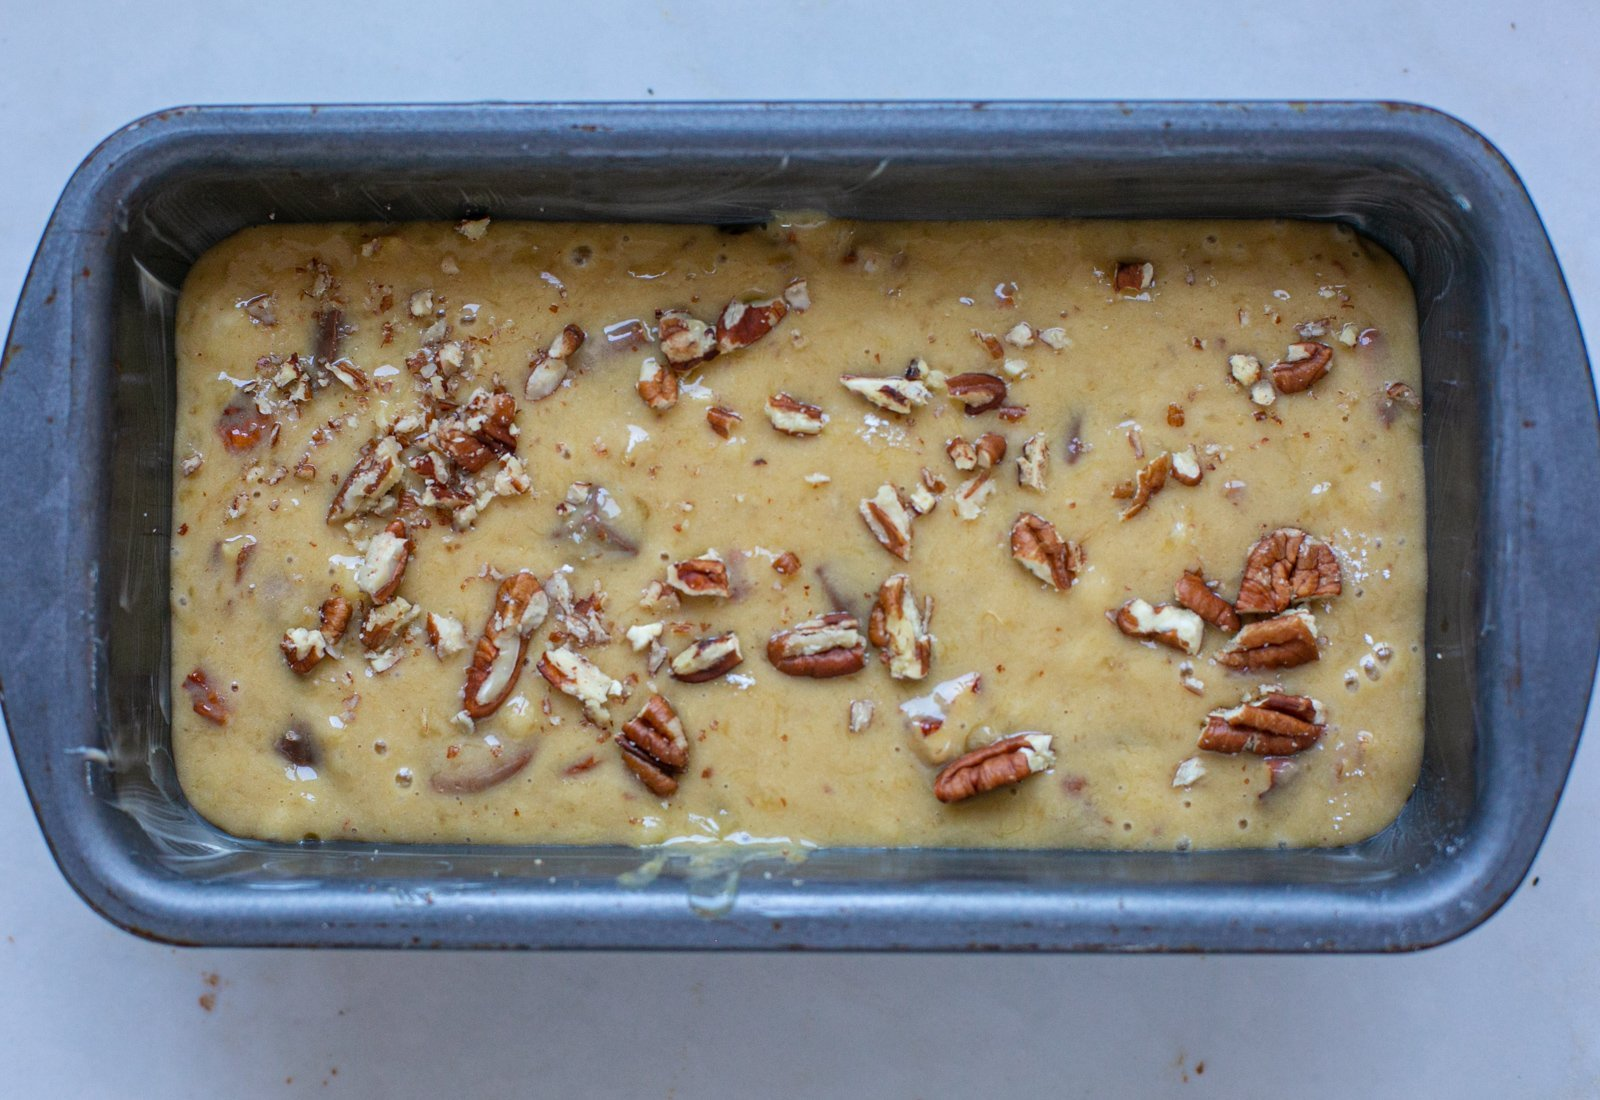 Chocolate pecan banana bread mixture in a loaf tin ready to bake